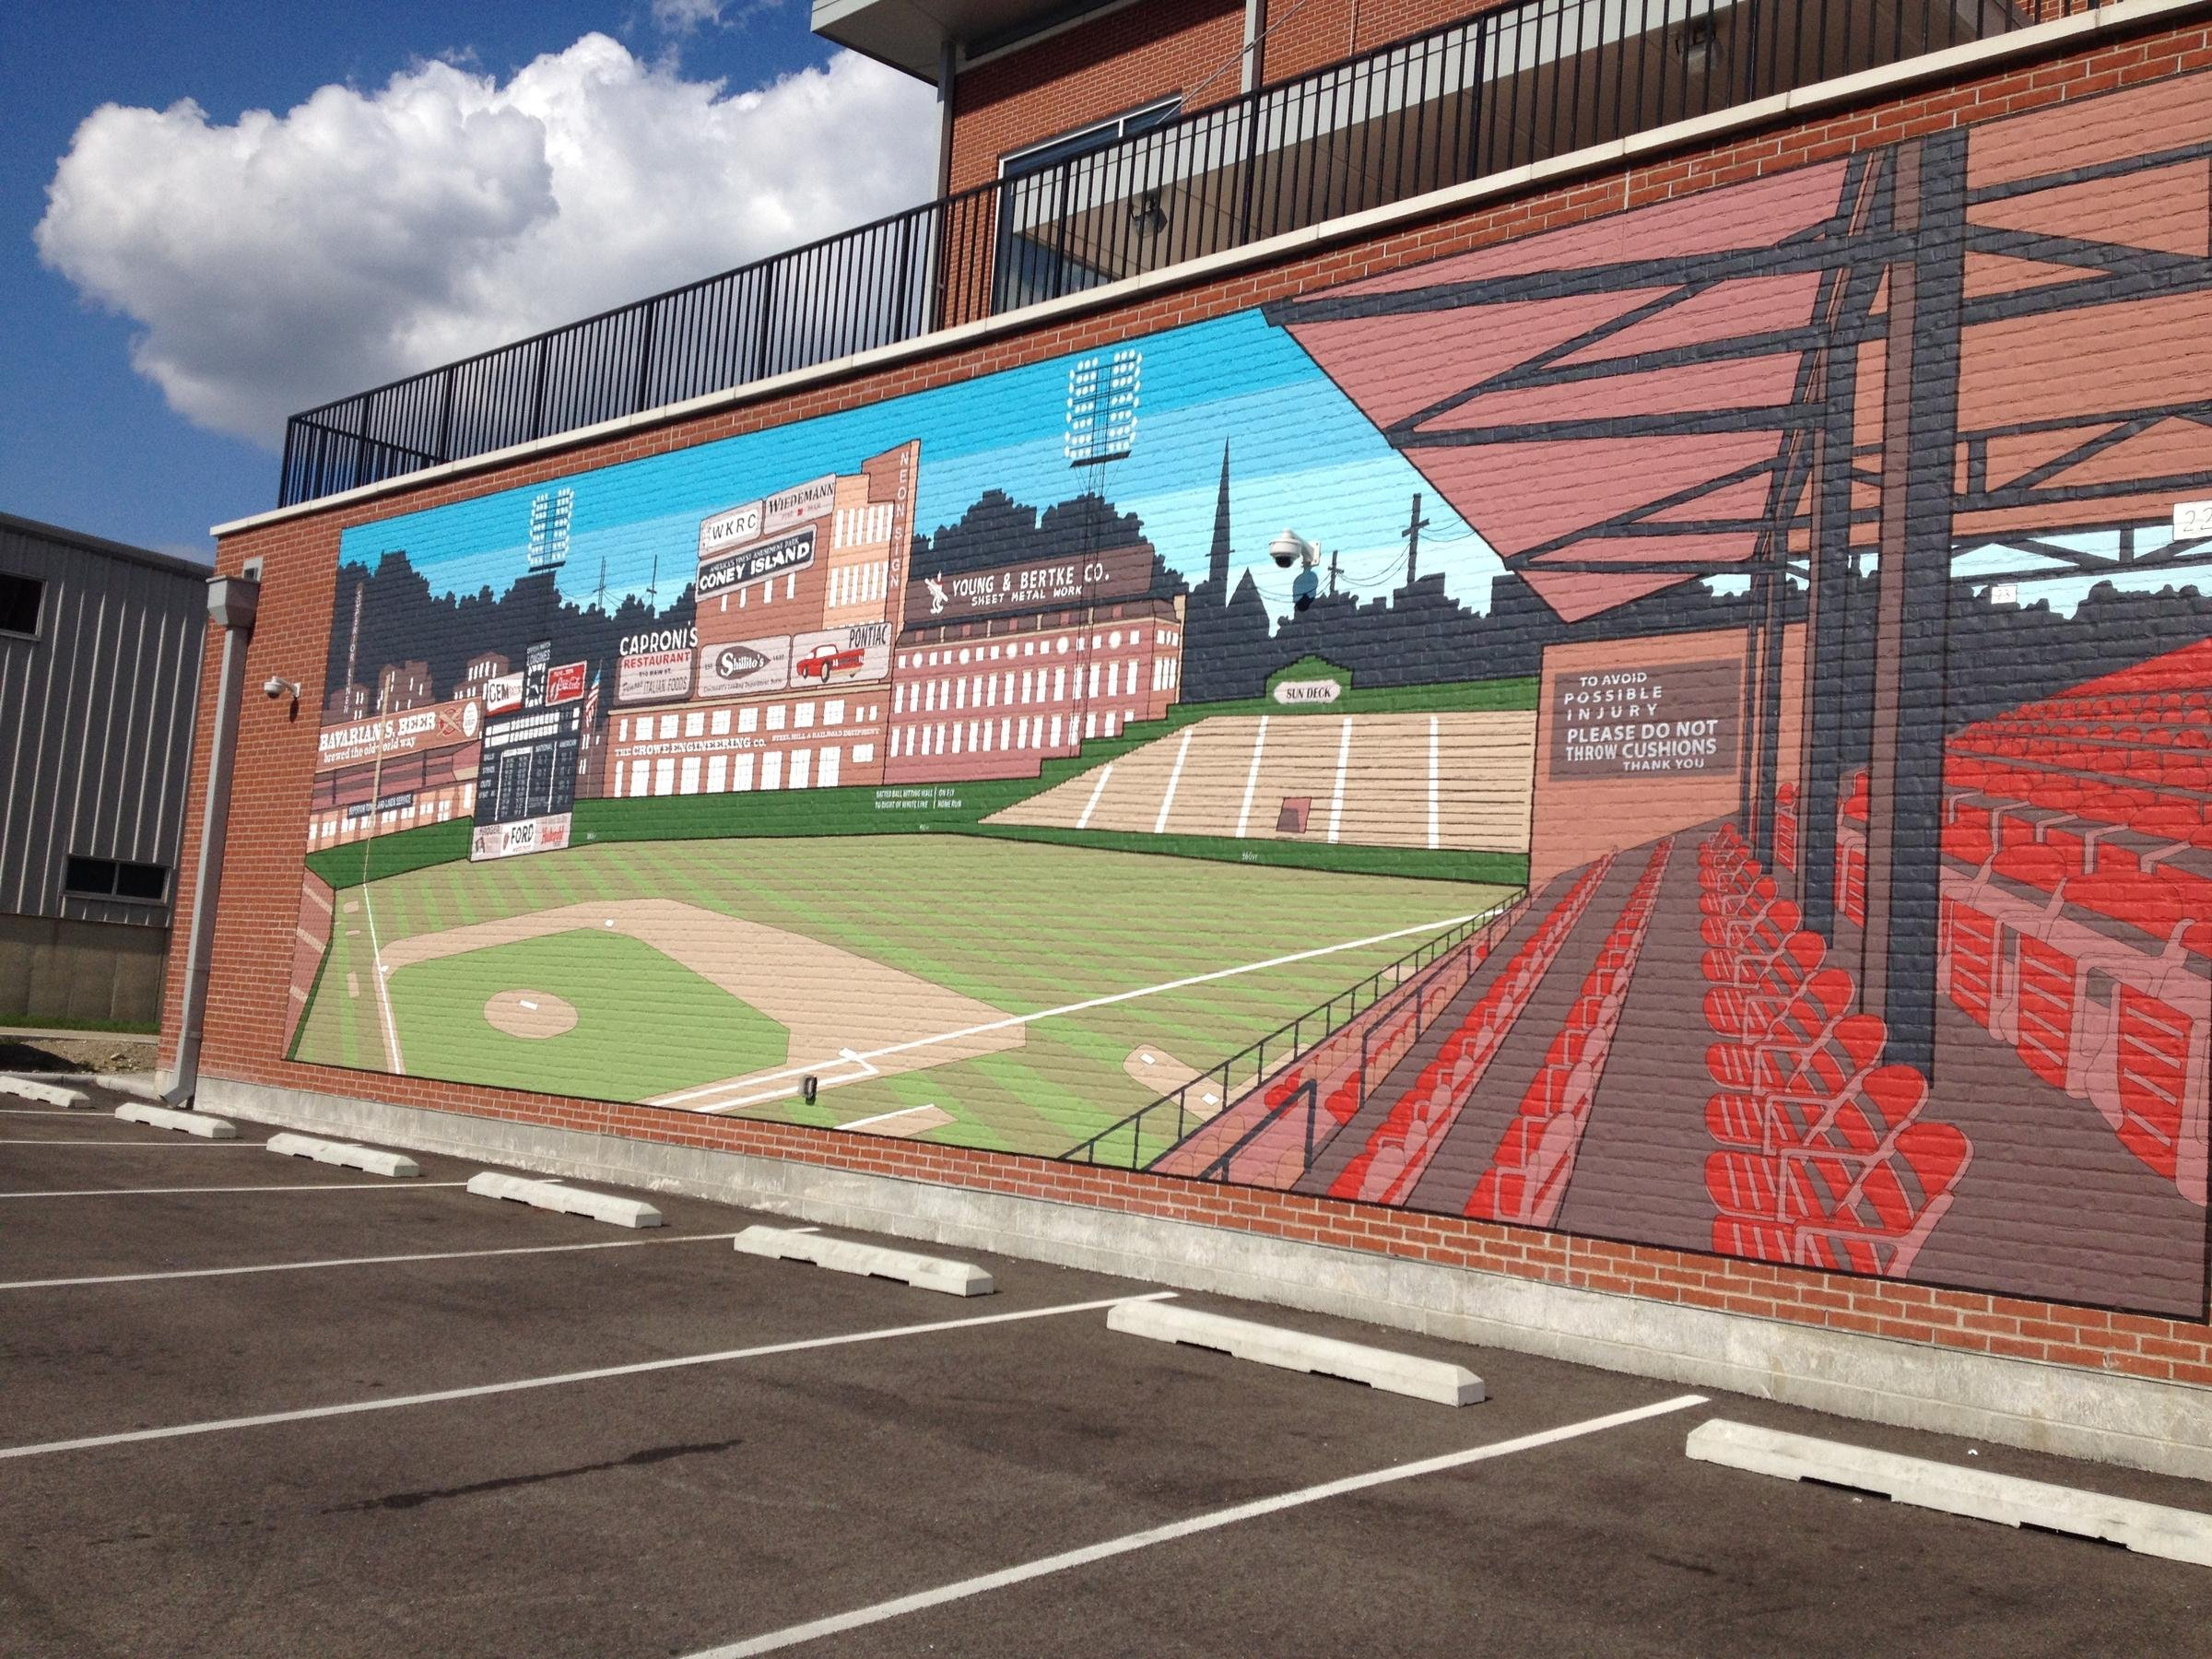 City Gospel Mission is located where Crosley Field once stood and in 2016 the Mission created this mural on the side of their building to honor the former ballpark.